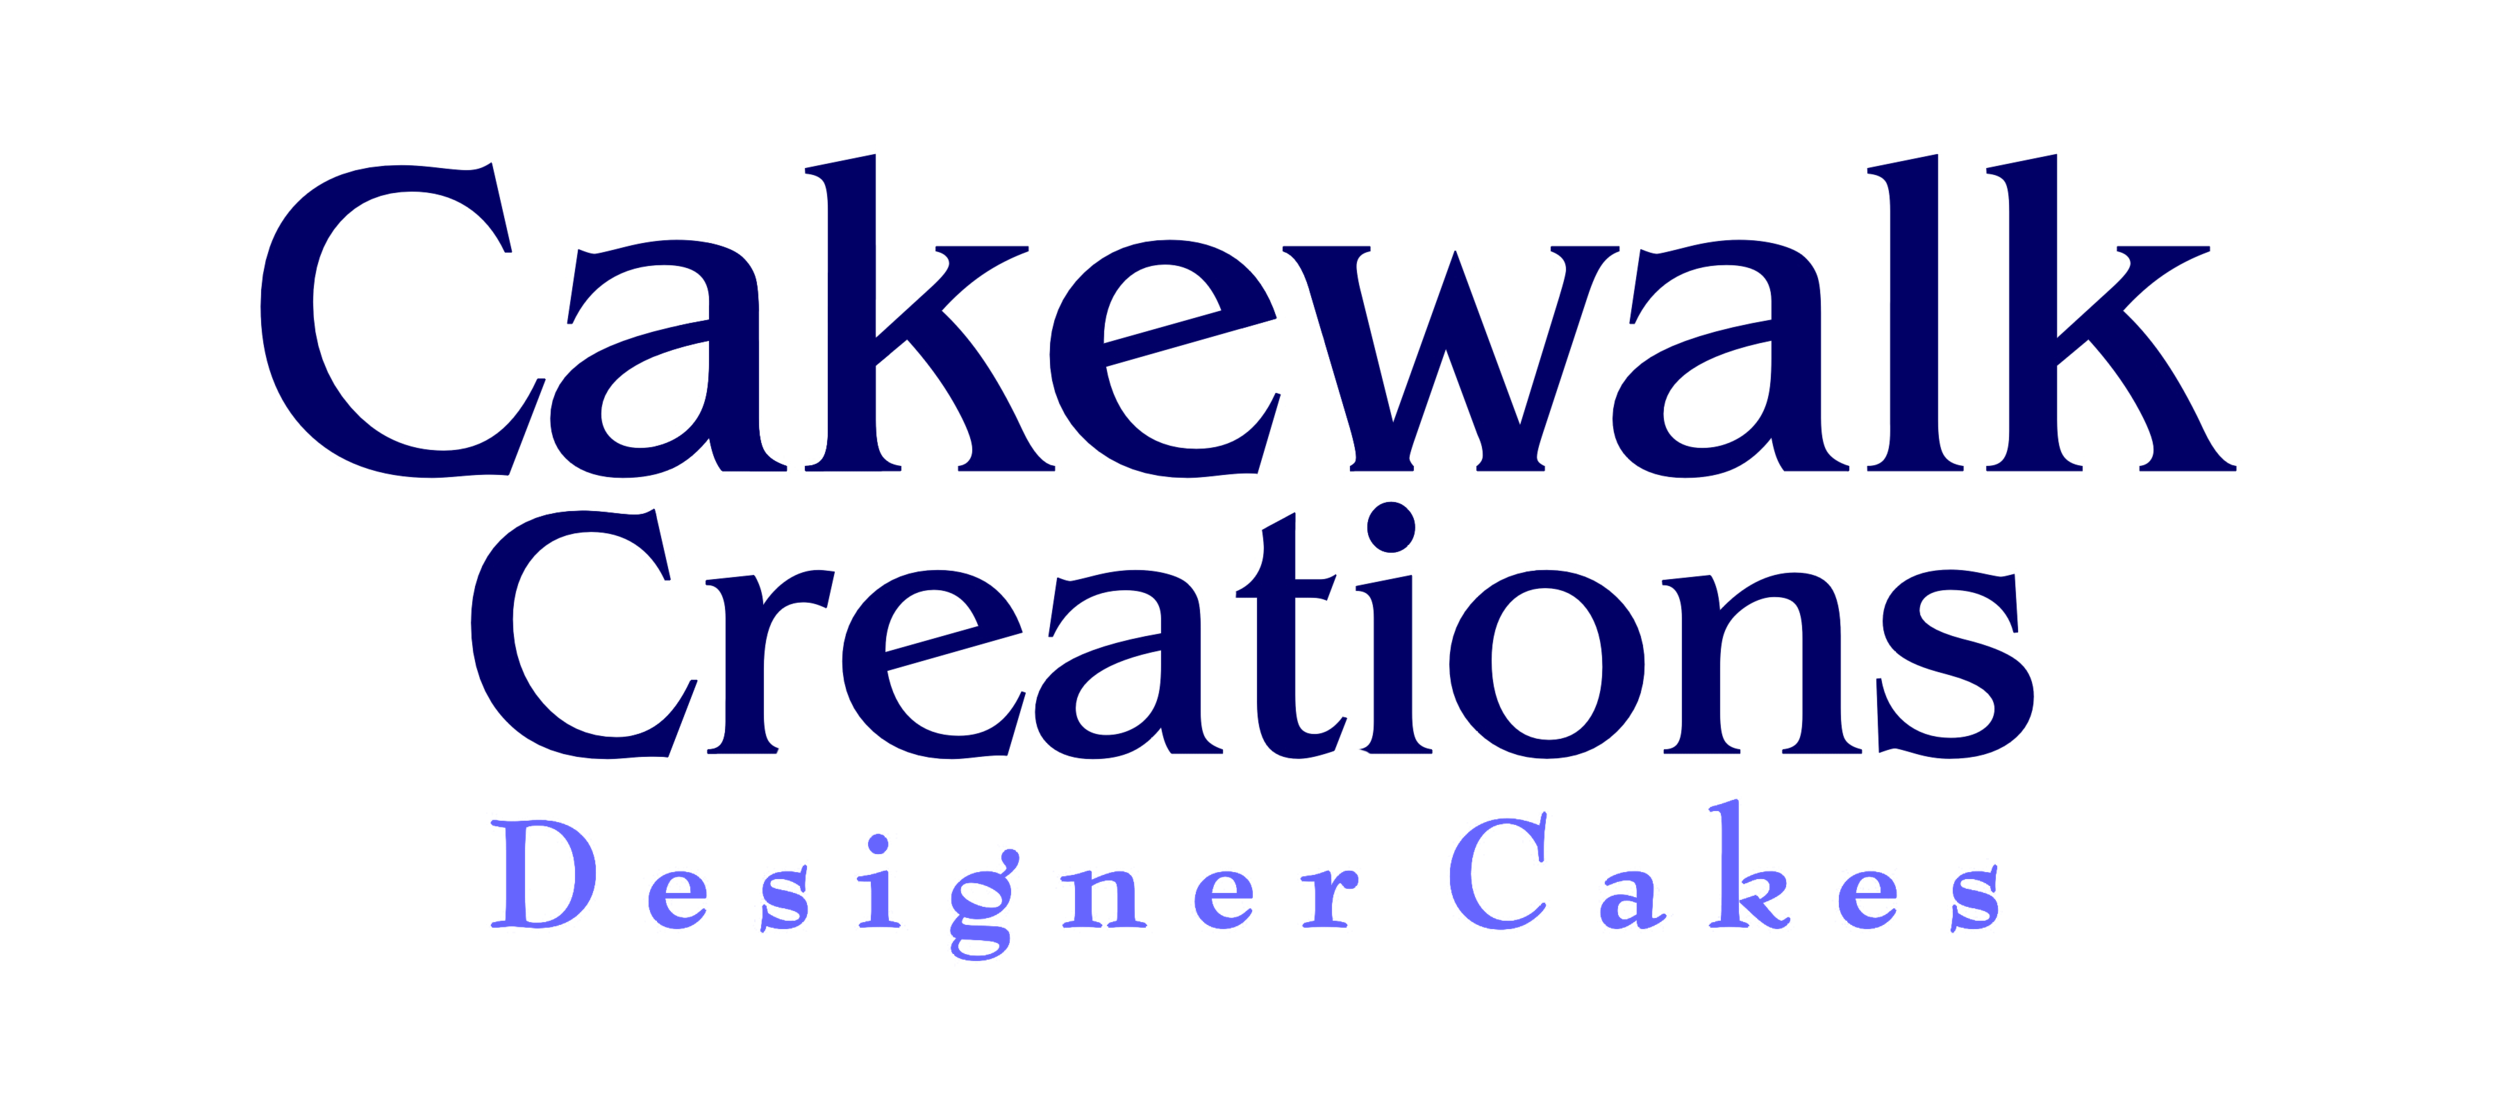 Cakewalk Creations Text - 3600x1600.png